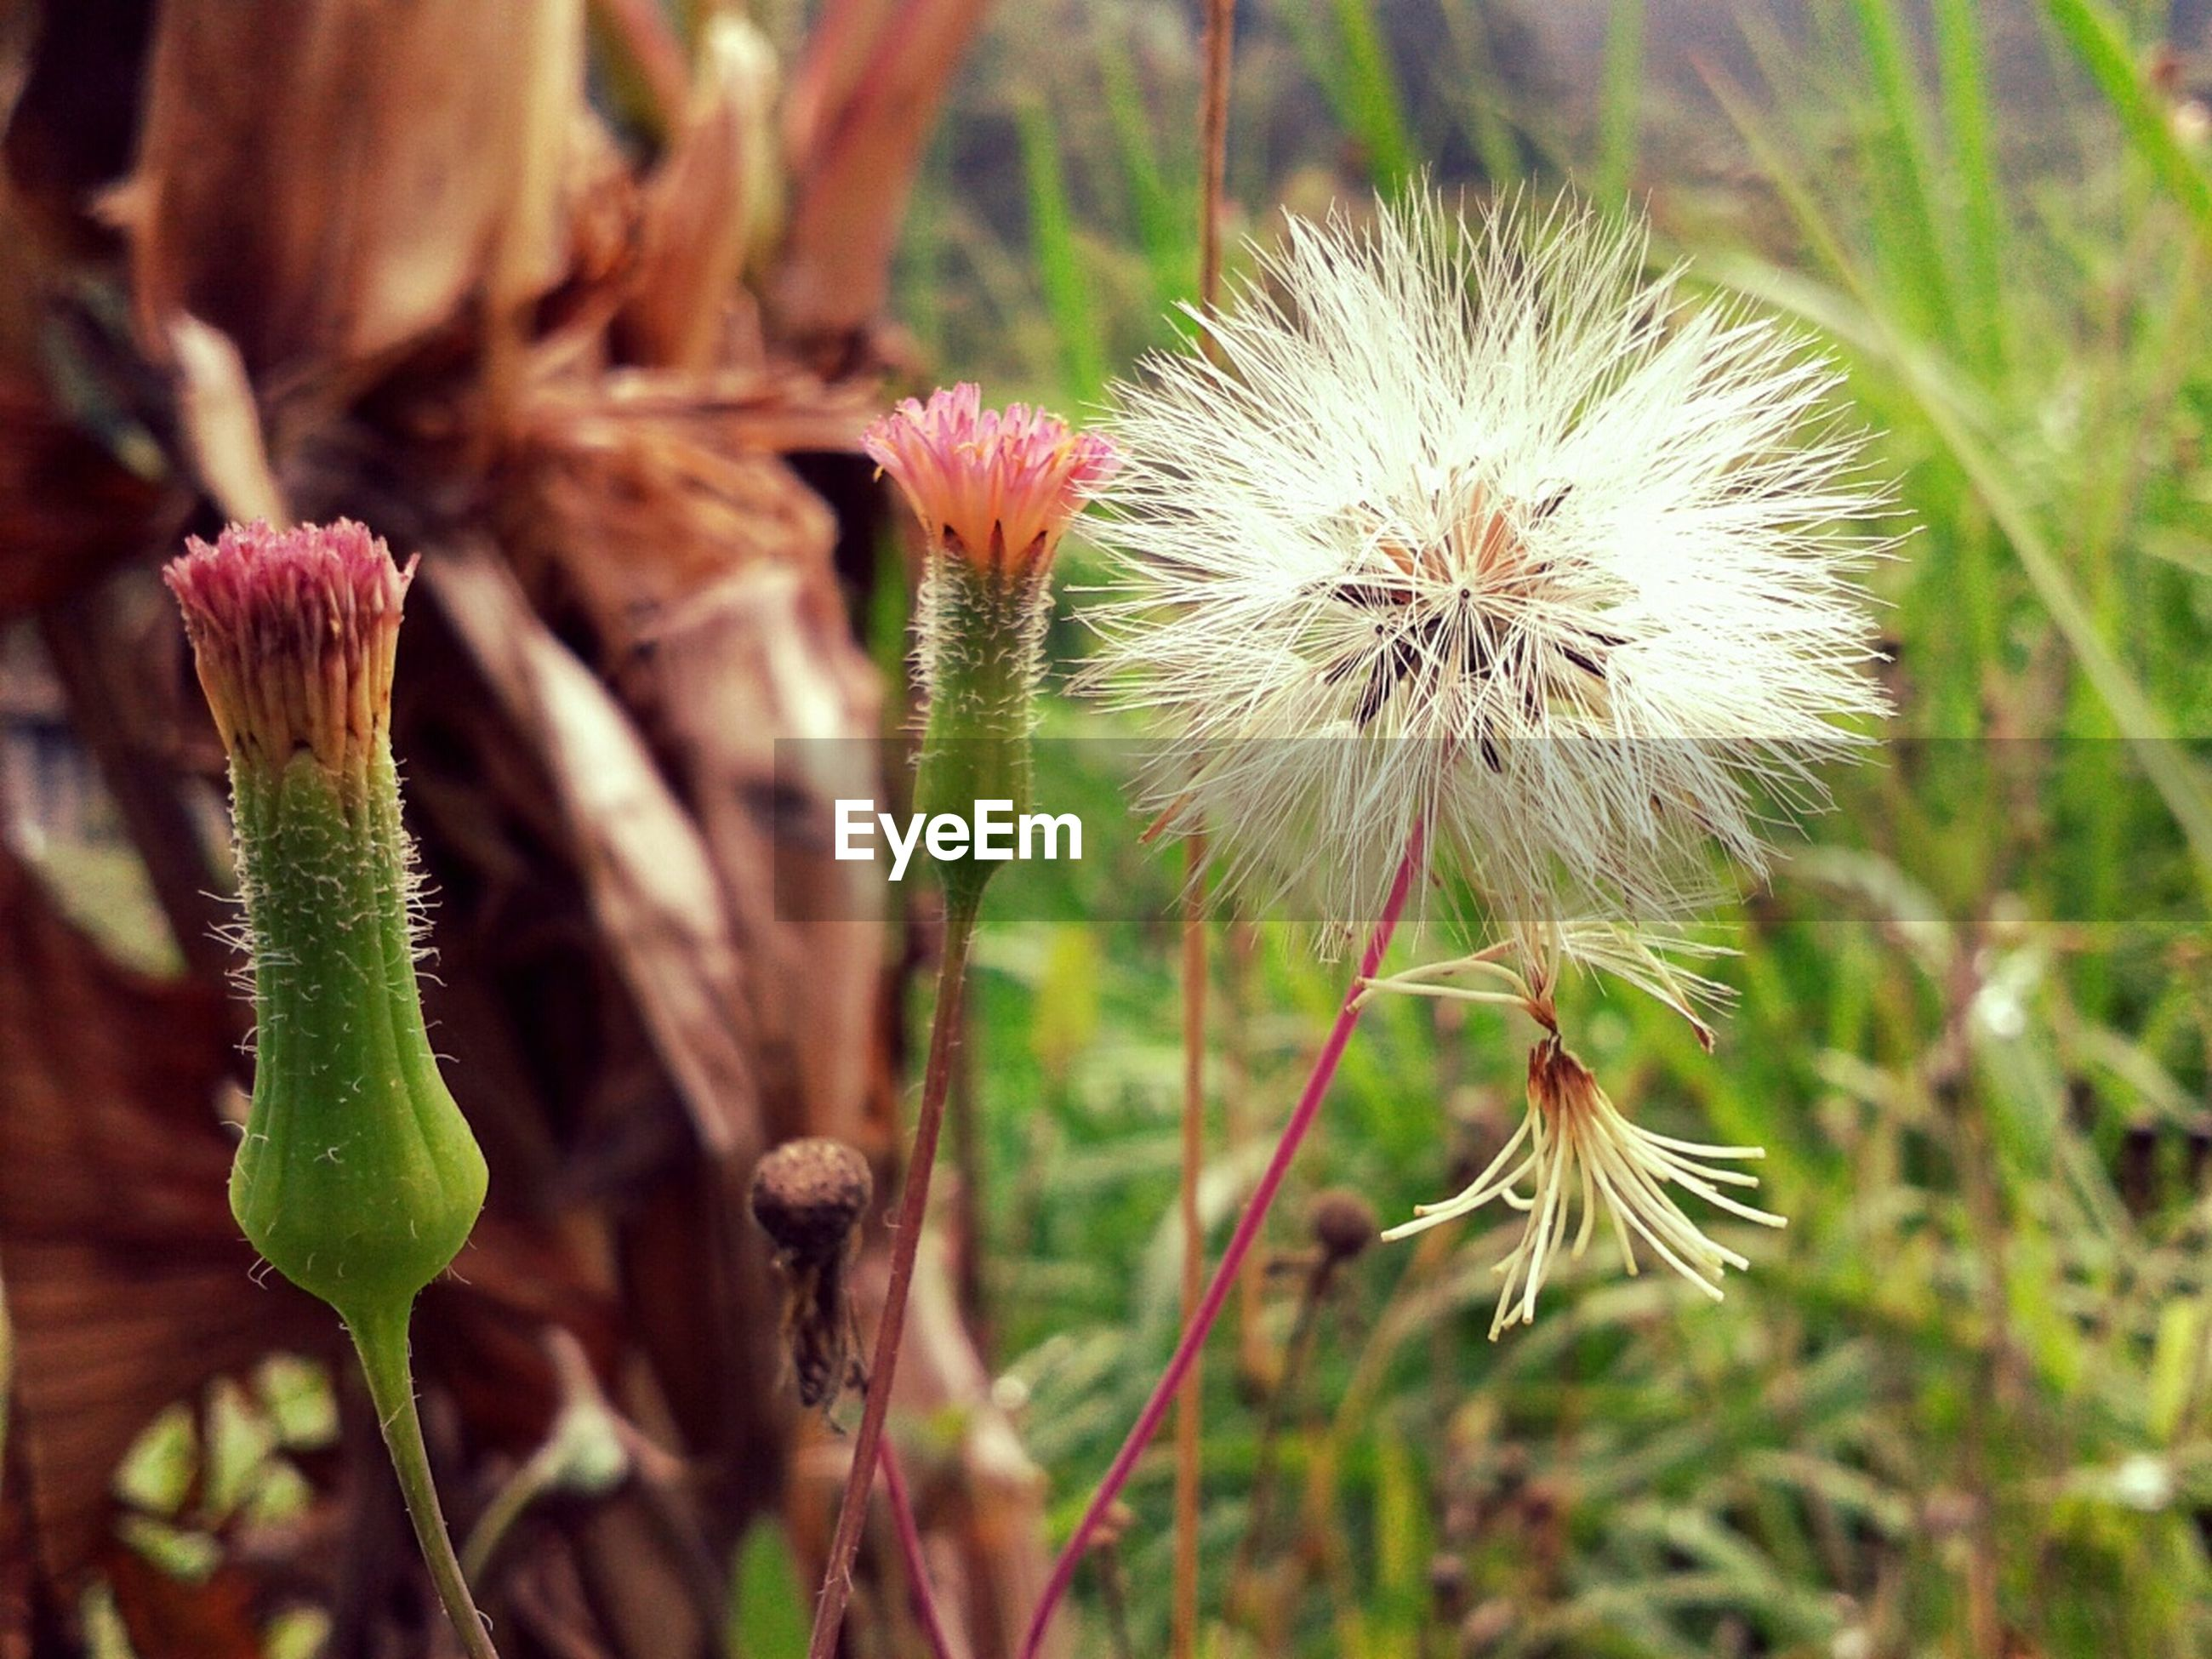 flower, growth, freshness, fragility, plant, close-up, focus on foreground, stem, nature, beauty in nature, flower head, bud, field, wildflower, uncultivated, selective focus, thistle, dandelion, botany, growing